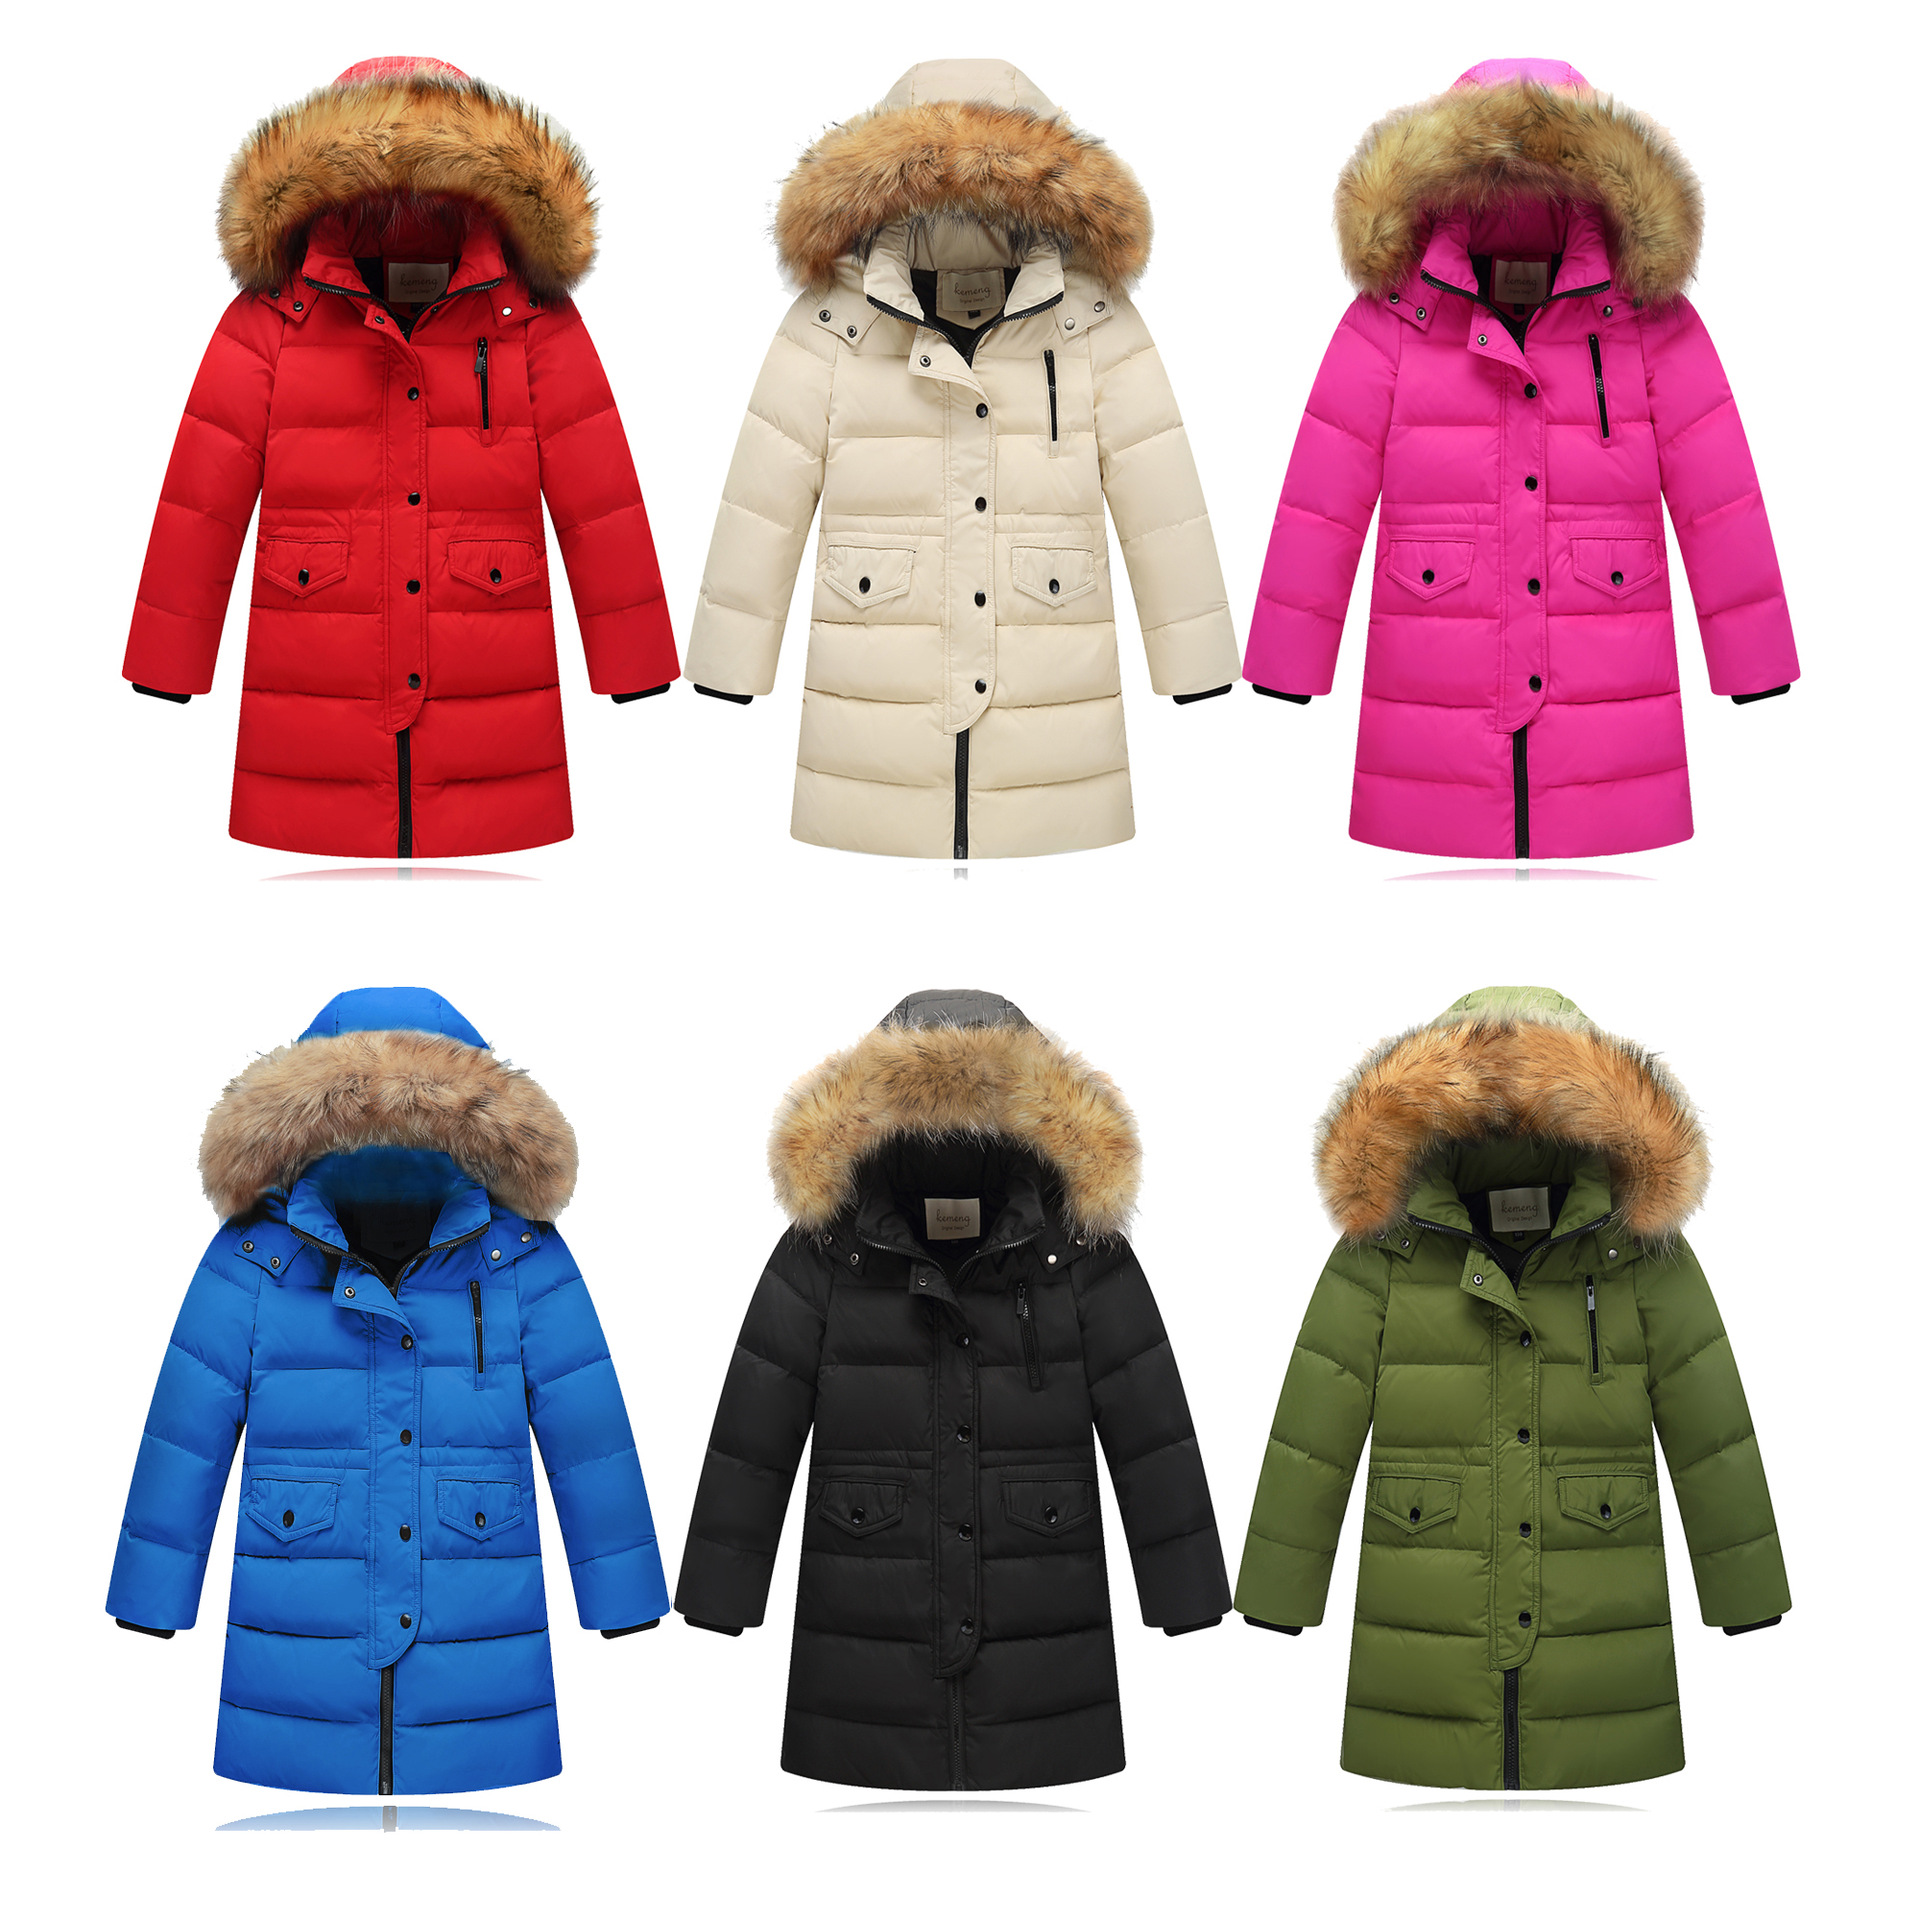 OLEKID 2018 Children Boys Winter Duck Down Jacket Long Thick Warm Fur Collar Teenage Girls Jackets 2-12 Years Kid Outerwear Coat olekid 2017 new cartoon rabbit winter girls parka thick warm hooded children outerwear 5 14 years teenage girls sweater coat